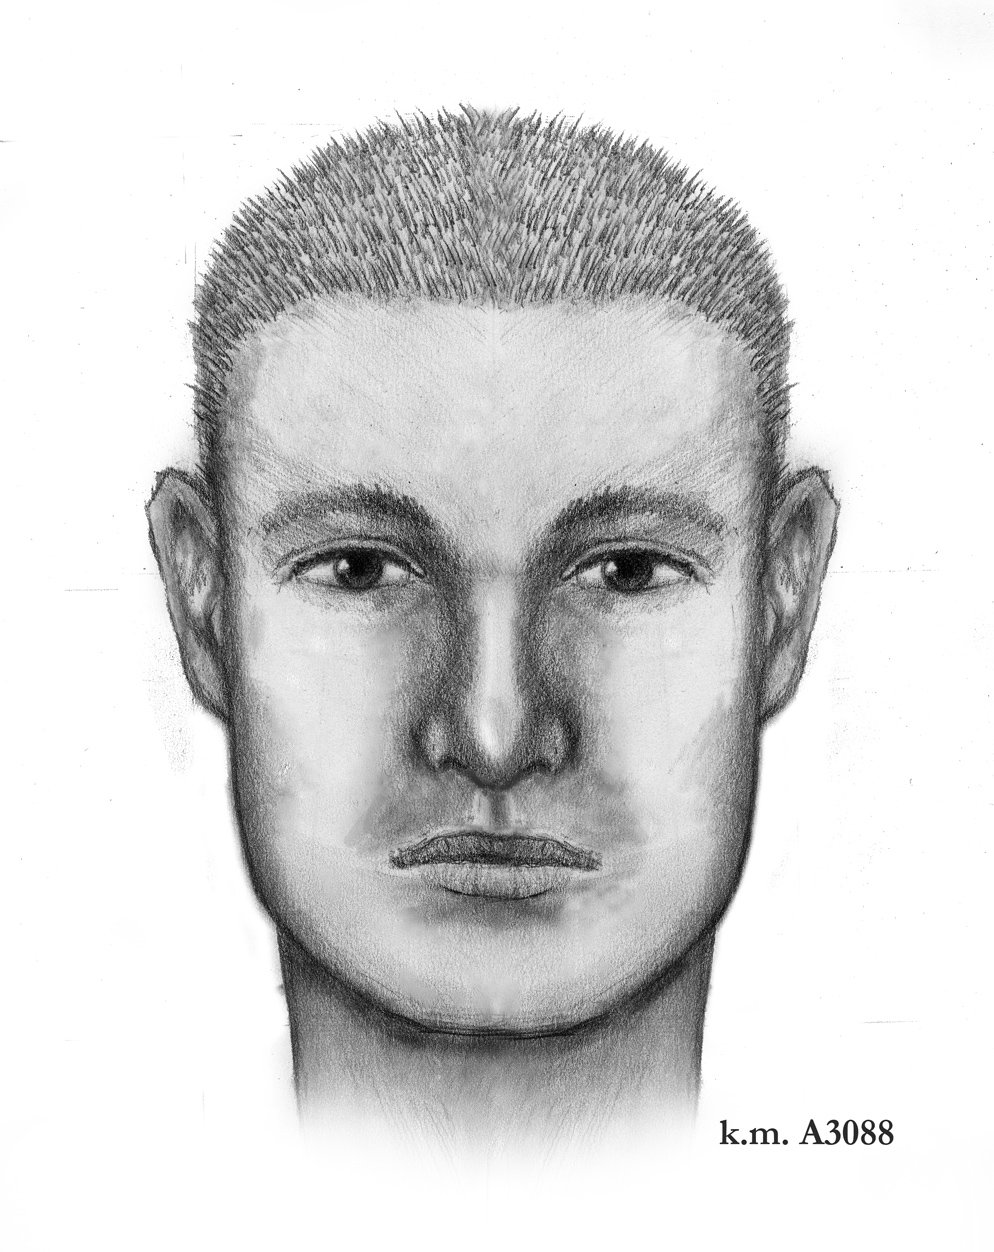 sketch of man believed to have been driving SUV